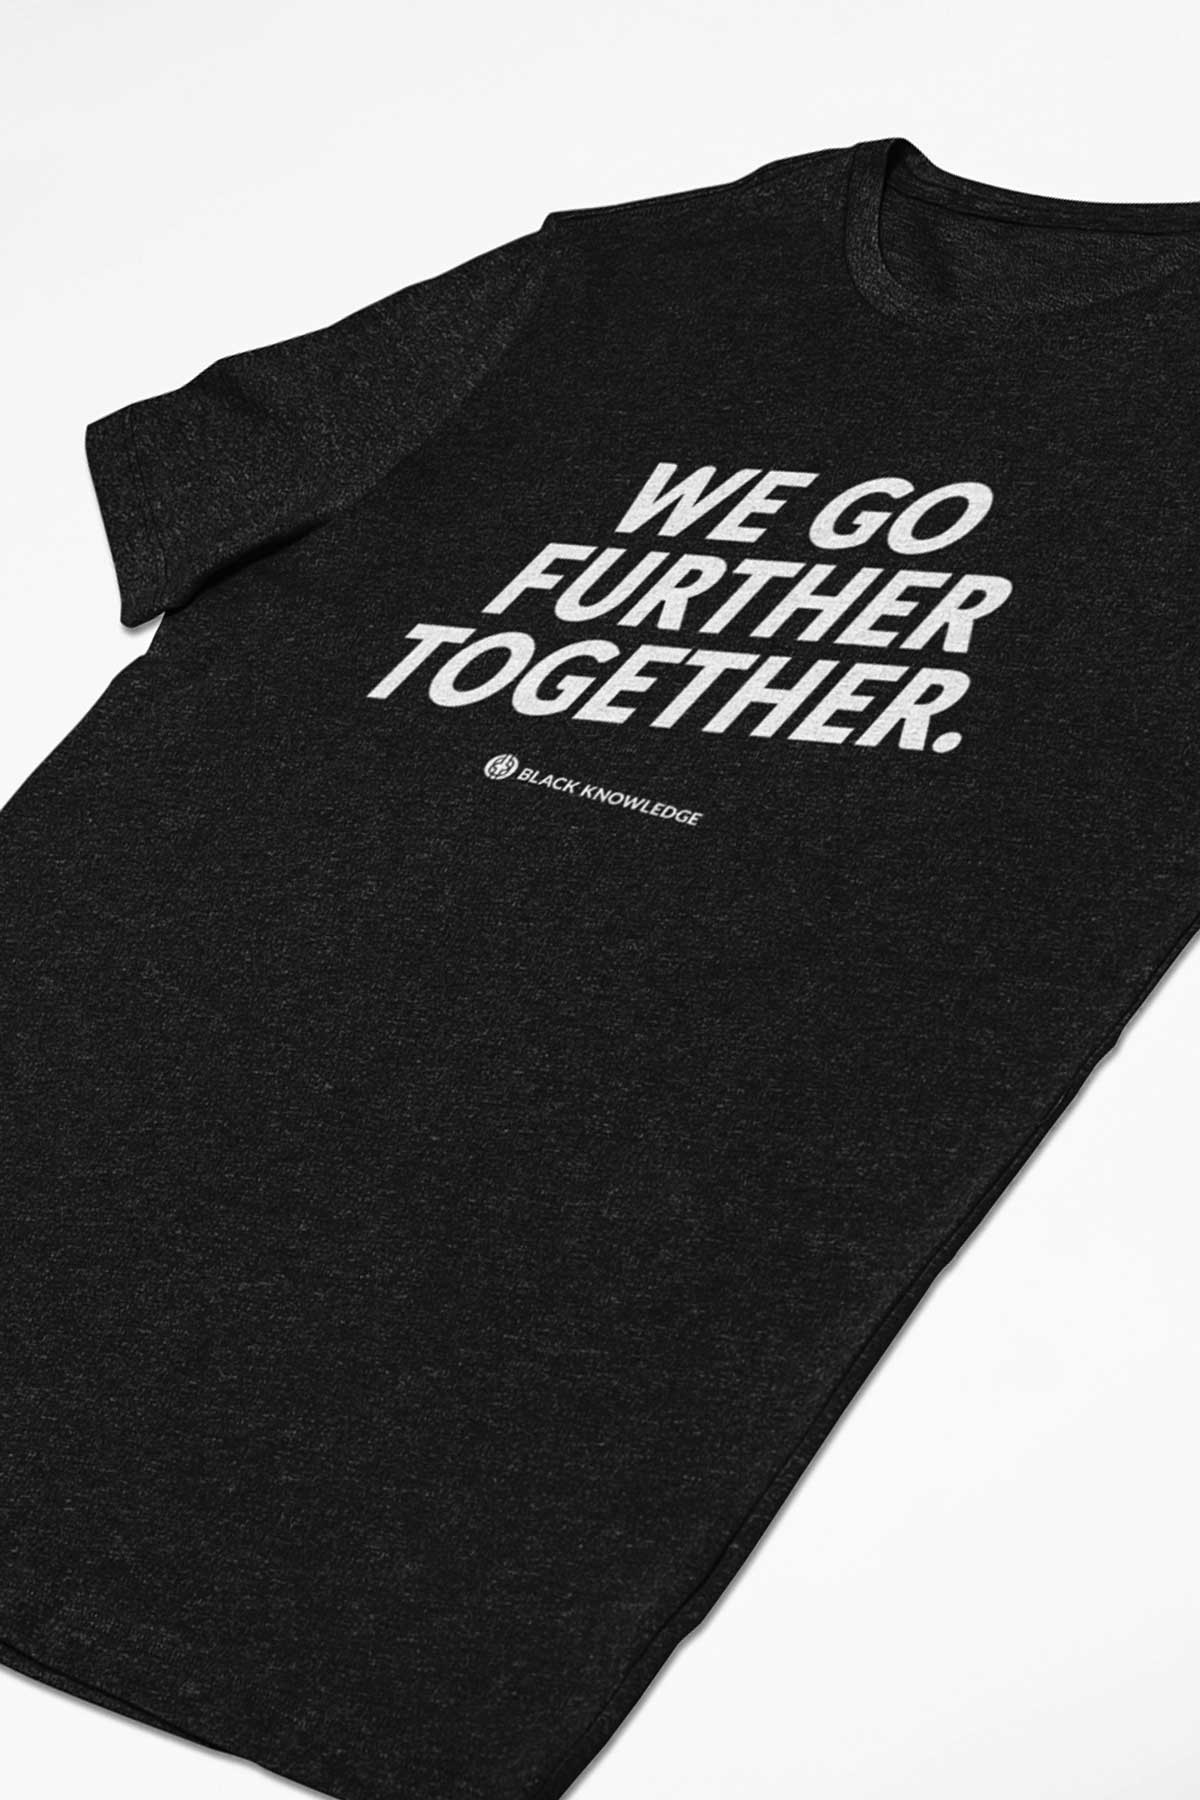 We Go Further Together Tee